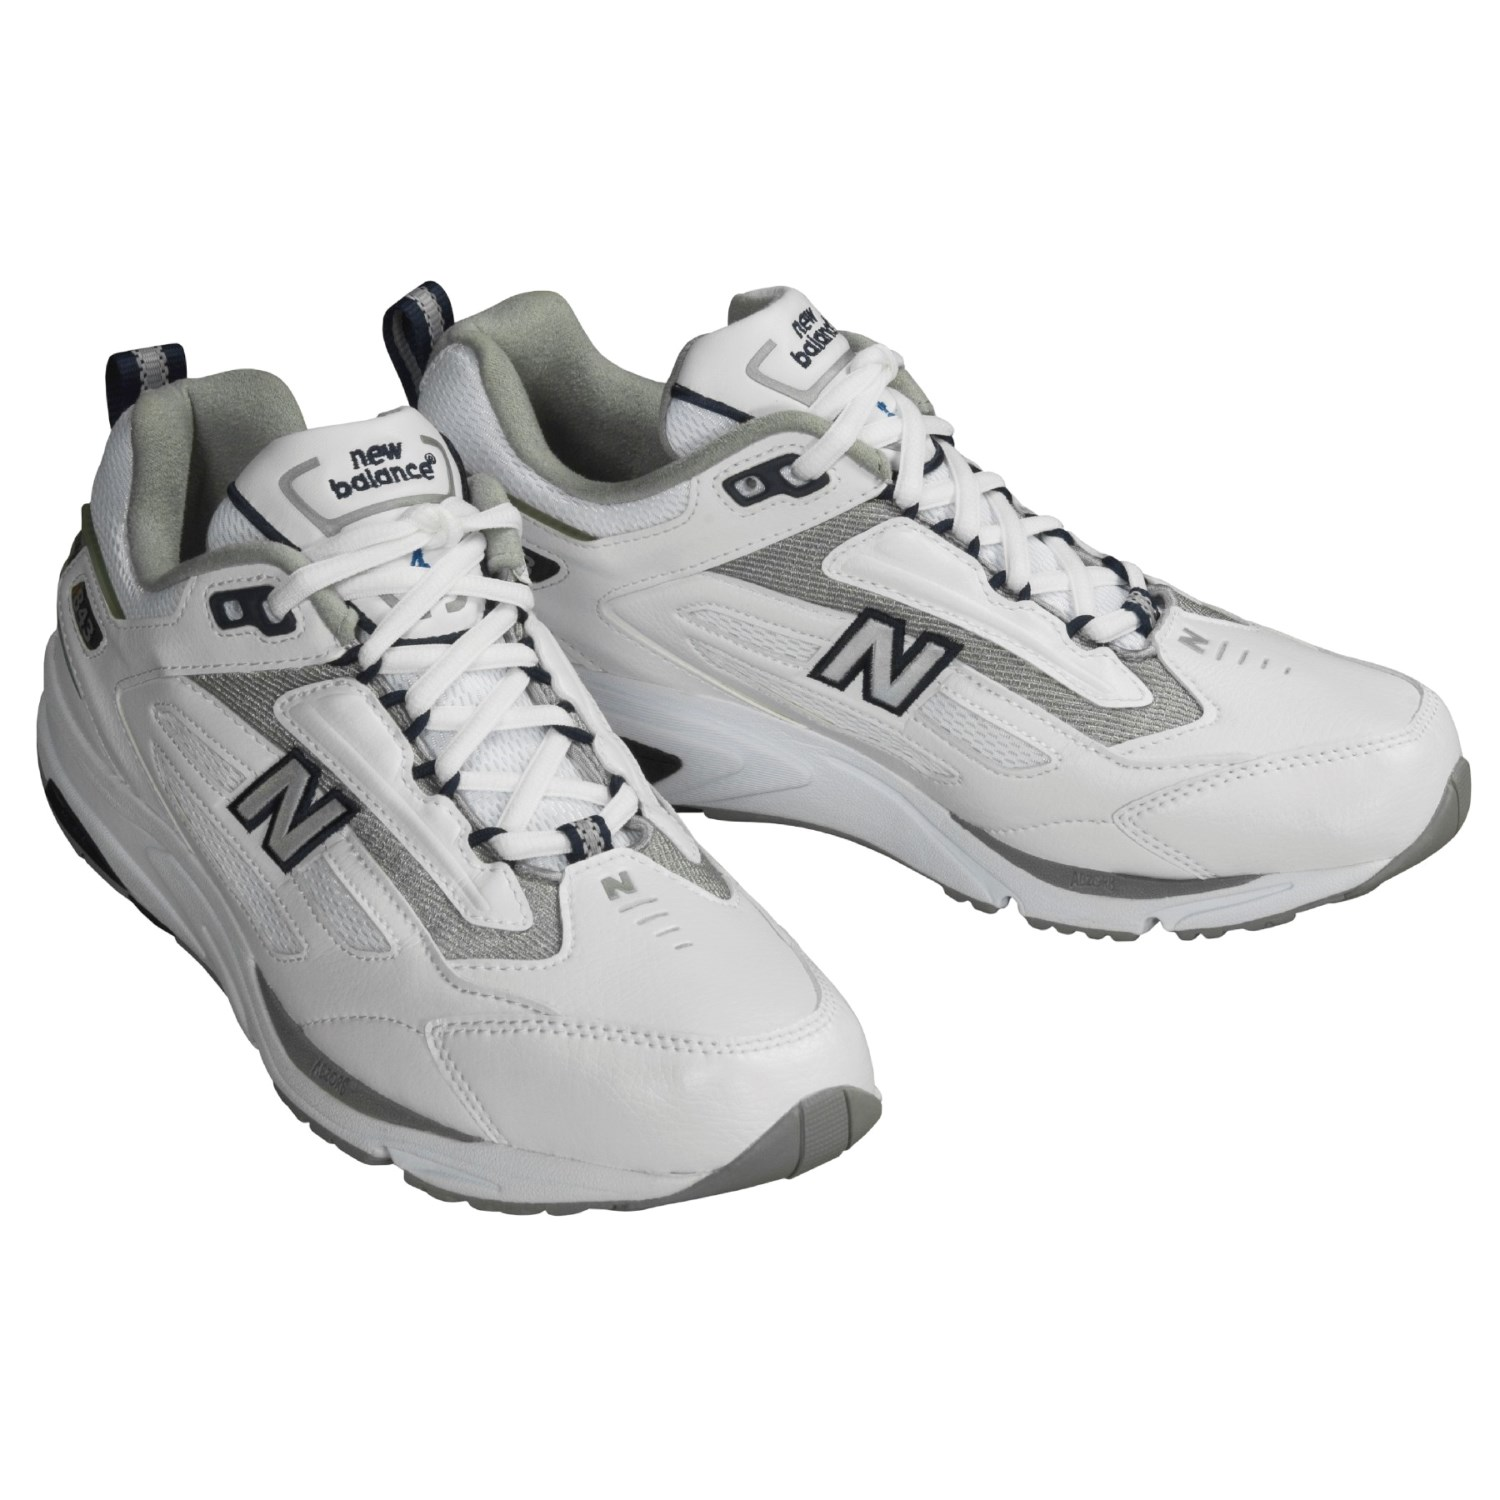 new balance 843 walking shoes for men 96359 save 39. Black Bedroom Furniture Sets. Home Design Ideas